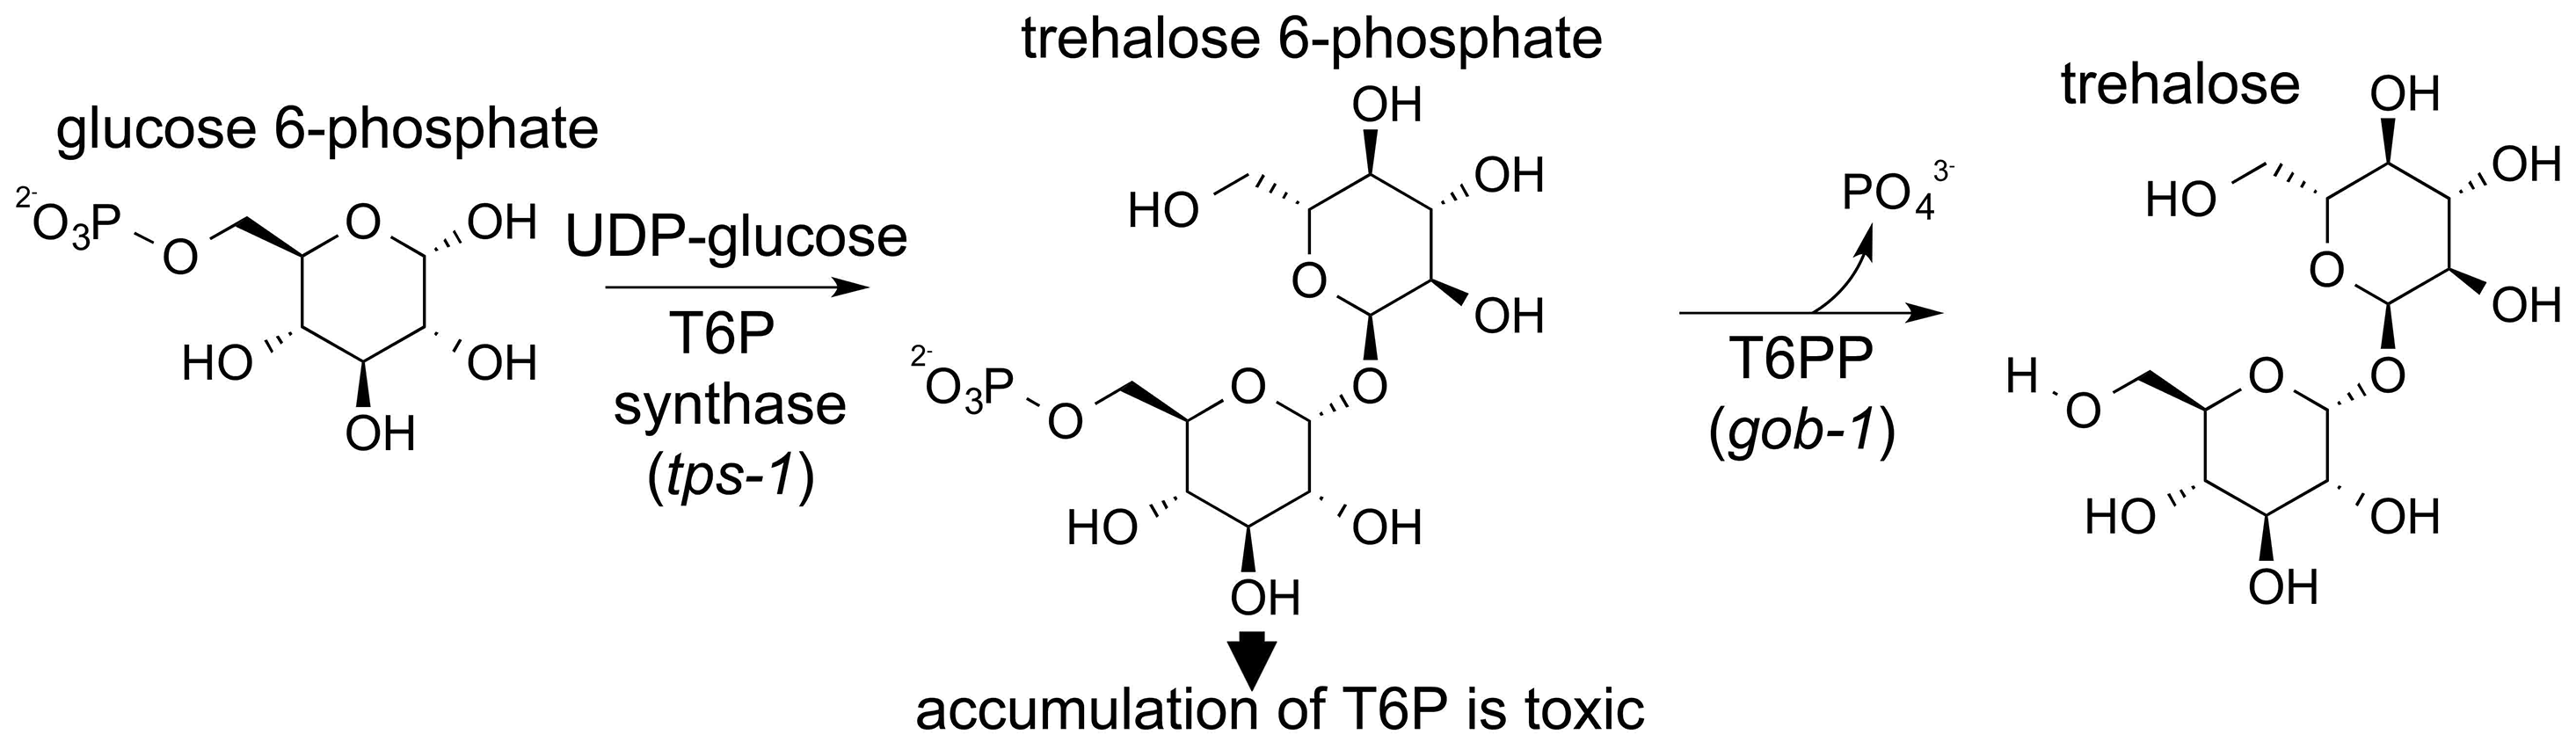 Schematic showing the two-step synthesis of trehalose.